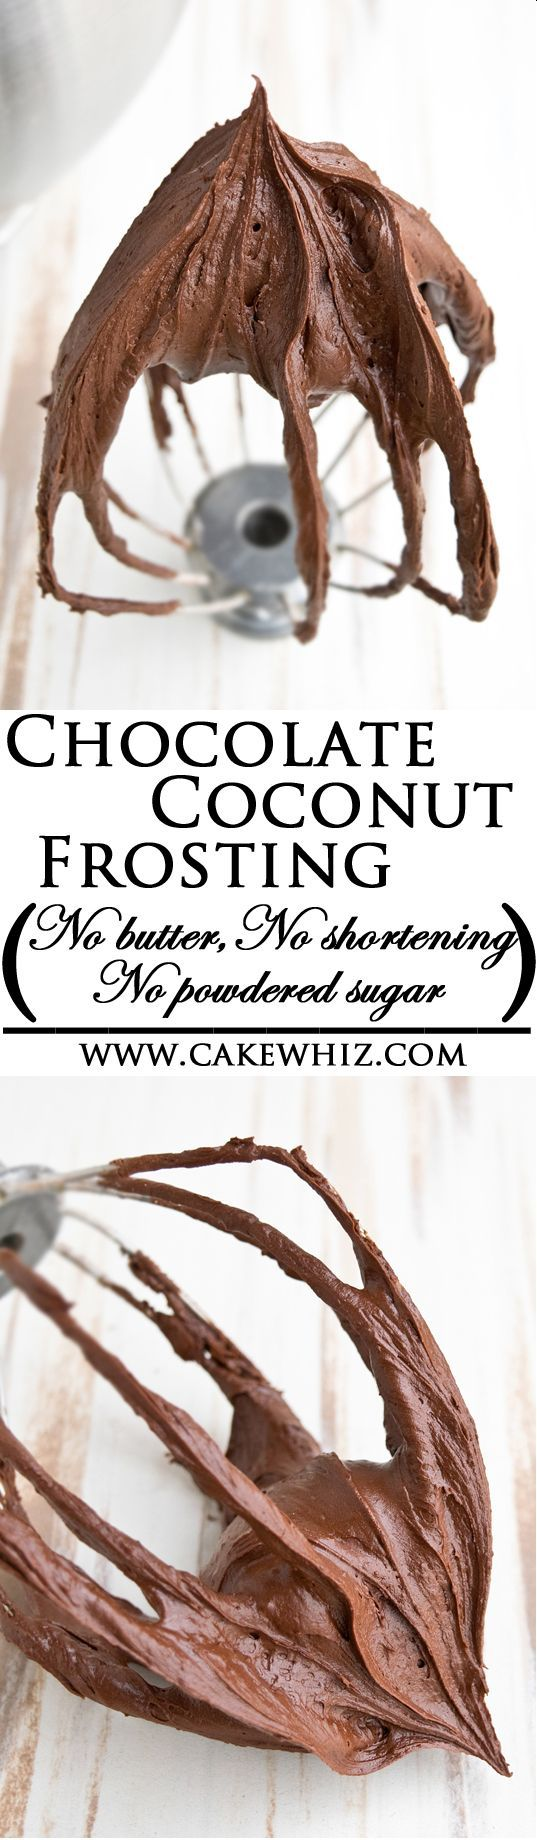 Healthy and vegan COCONUT CREAM CHOCOLATE FROSTING, made with no butter, no shortening, no margarine and no powdered sugar. From http://cakewhiz.com